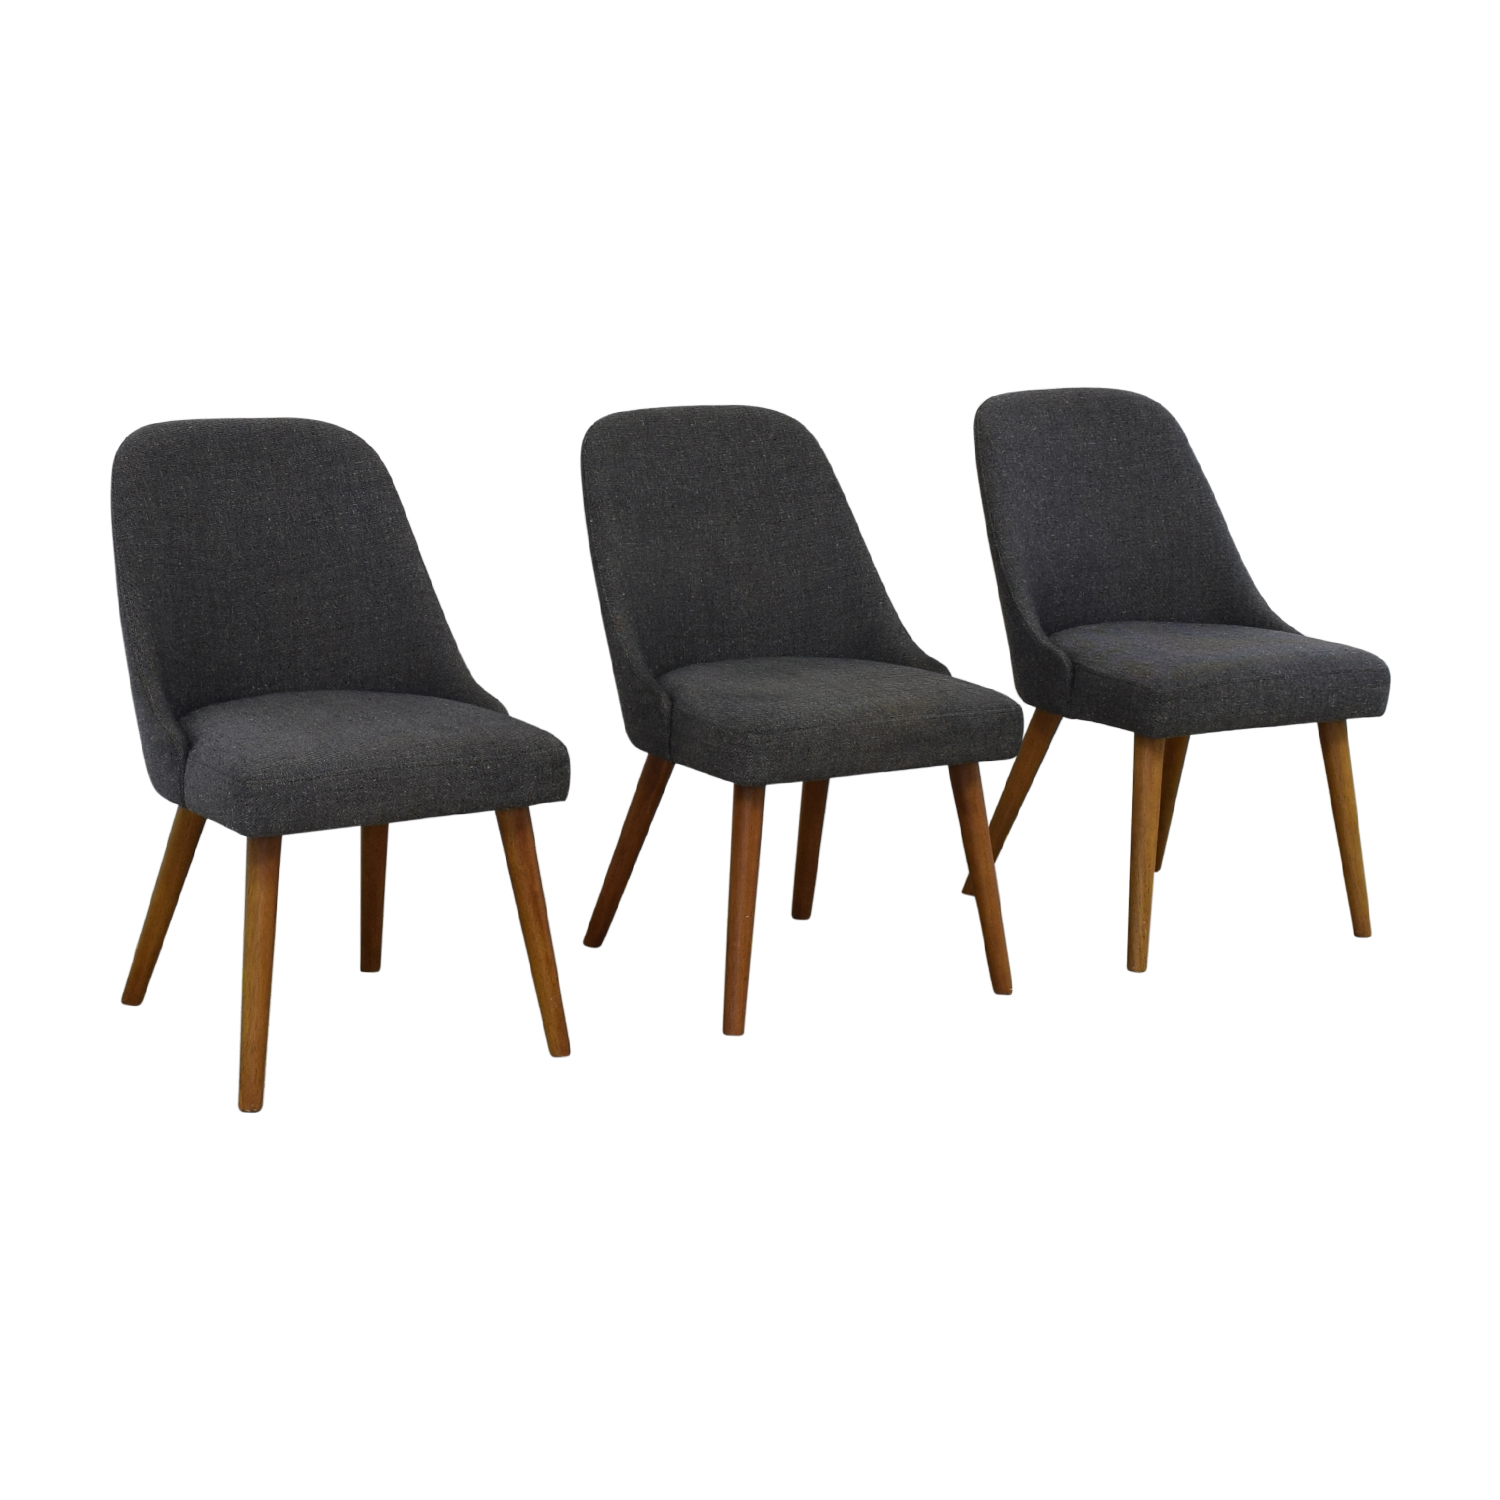 buy West Elm Mid-Century Upholstered Dining Chairs West Elm